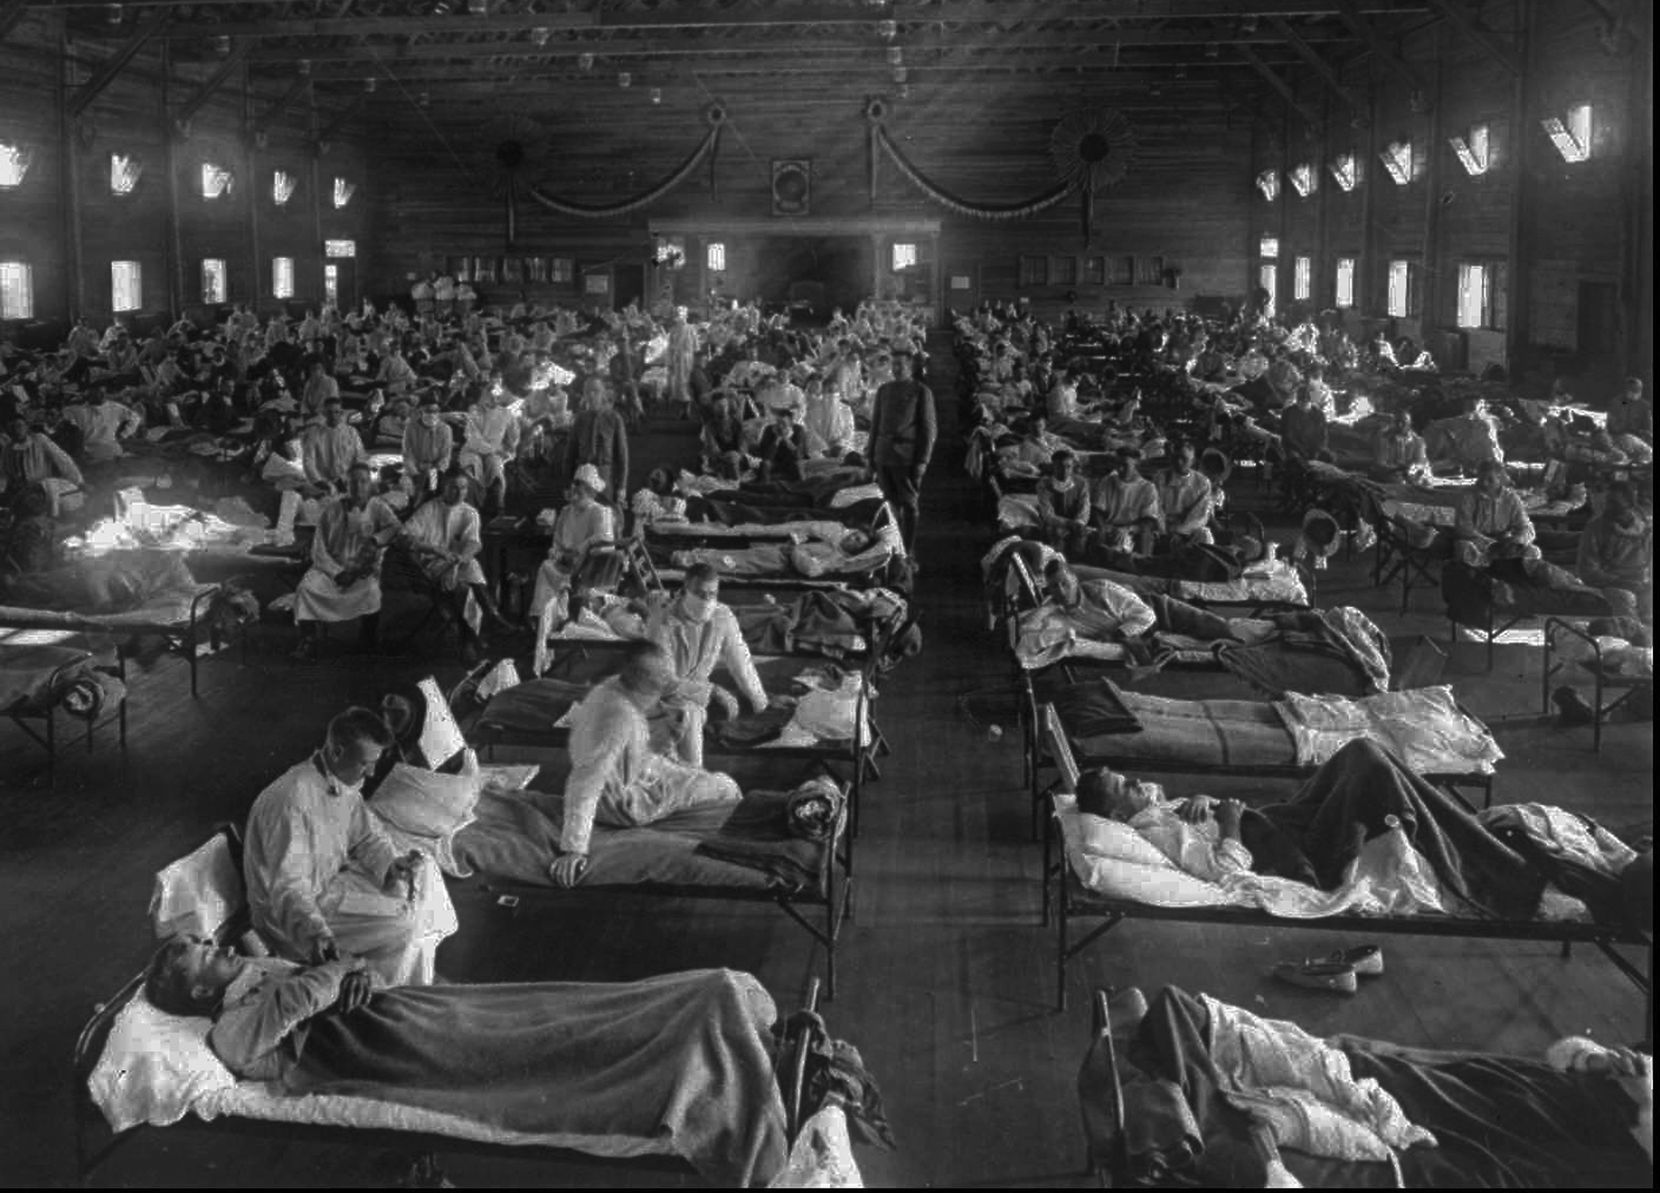 Victims of the 1918 Spanish influenza crowded into an emergency hospital at Fort Riley, Kan. The 1918 pandemic is believed to have killed more than 50 million people worldwide. The virus strain had been mild in the spring but turned deadly that fall. In Dallas and elsewhere, entire families were wiped out and many children were orphaned.